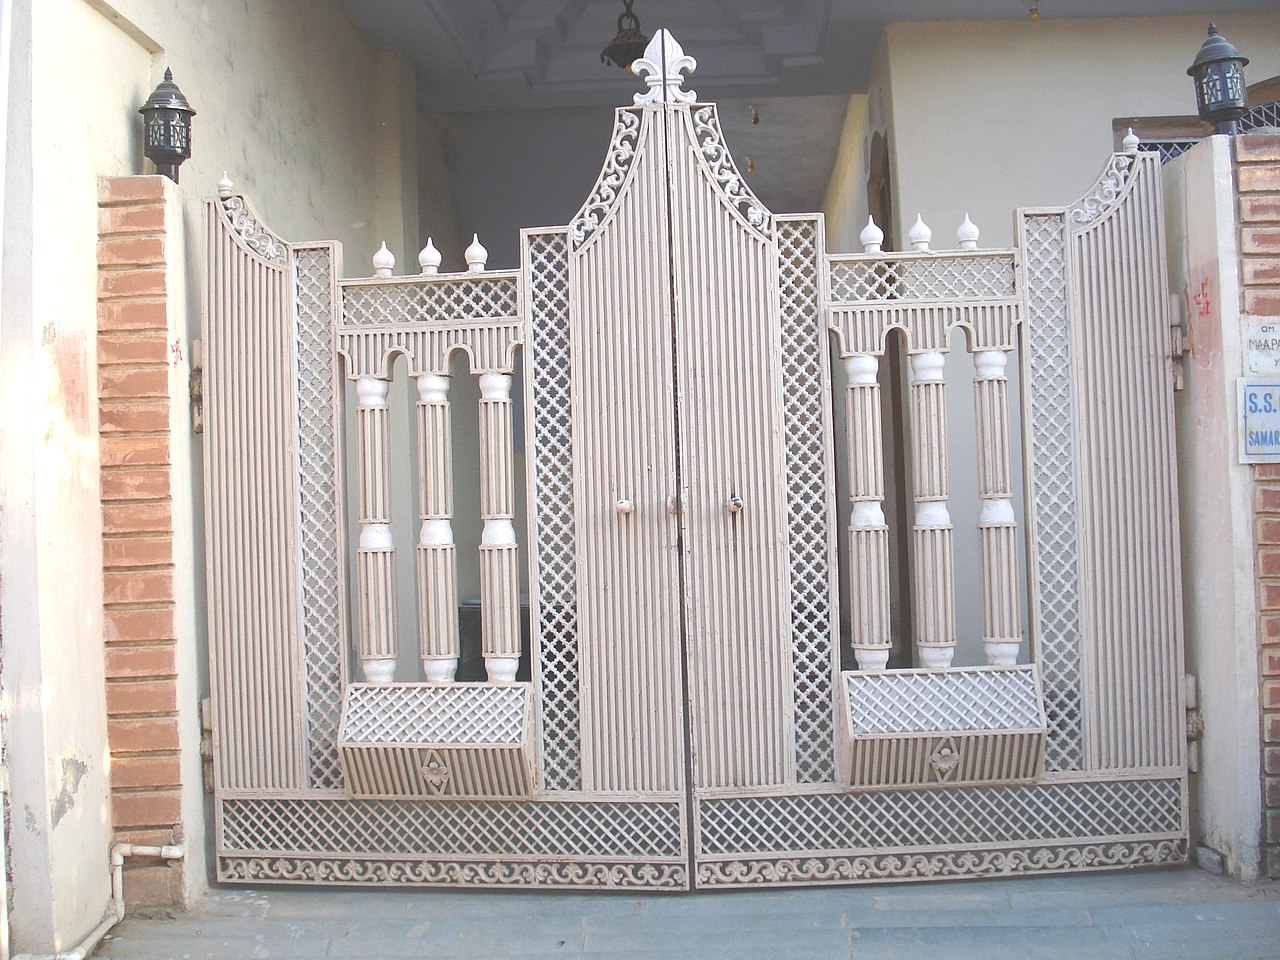 File Gyanendra Singh Chauhan Advocate Home Main Gate   panoramio jpg. File Gyanendra Singh Chauhan Advocate Home Main Gate   panoramio